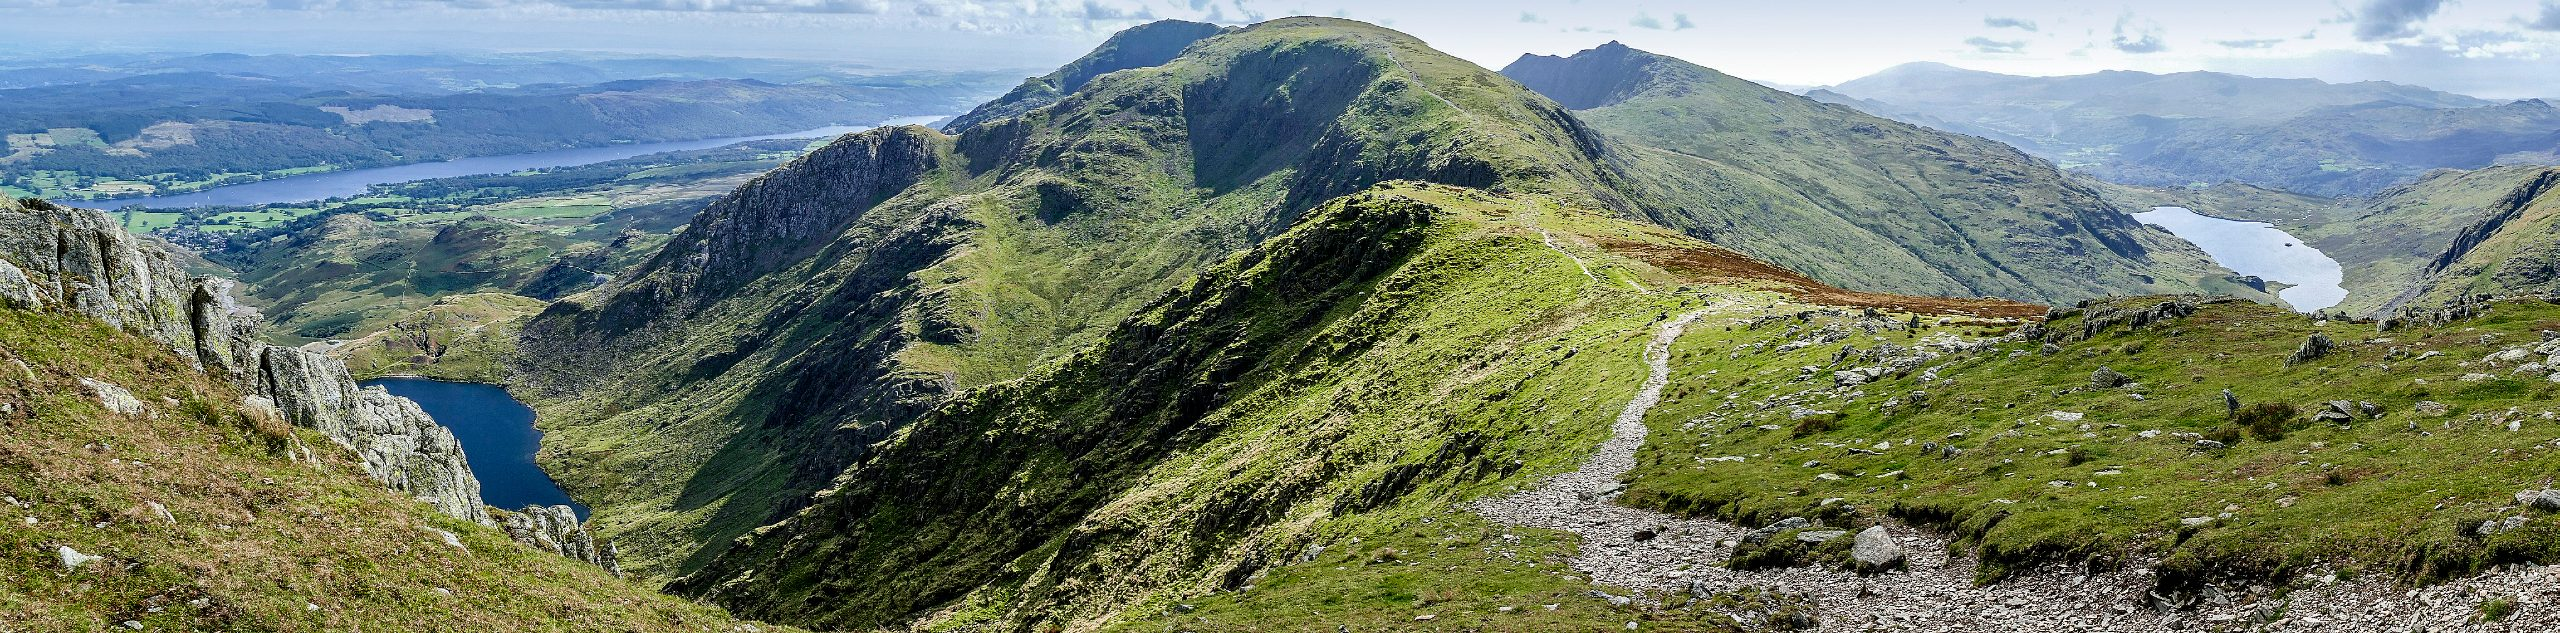 Old Man of Coniston, Swirl How, and Wetherlam Circular Walk Map